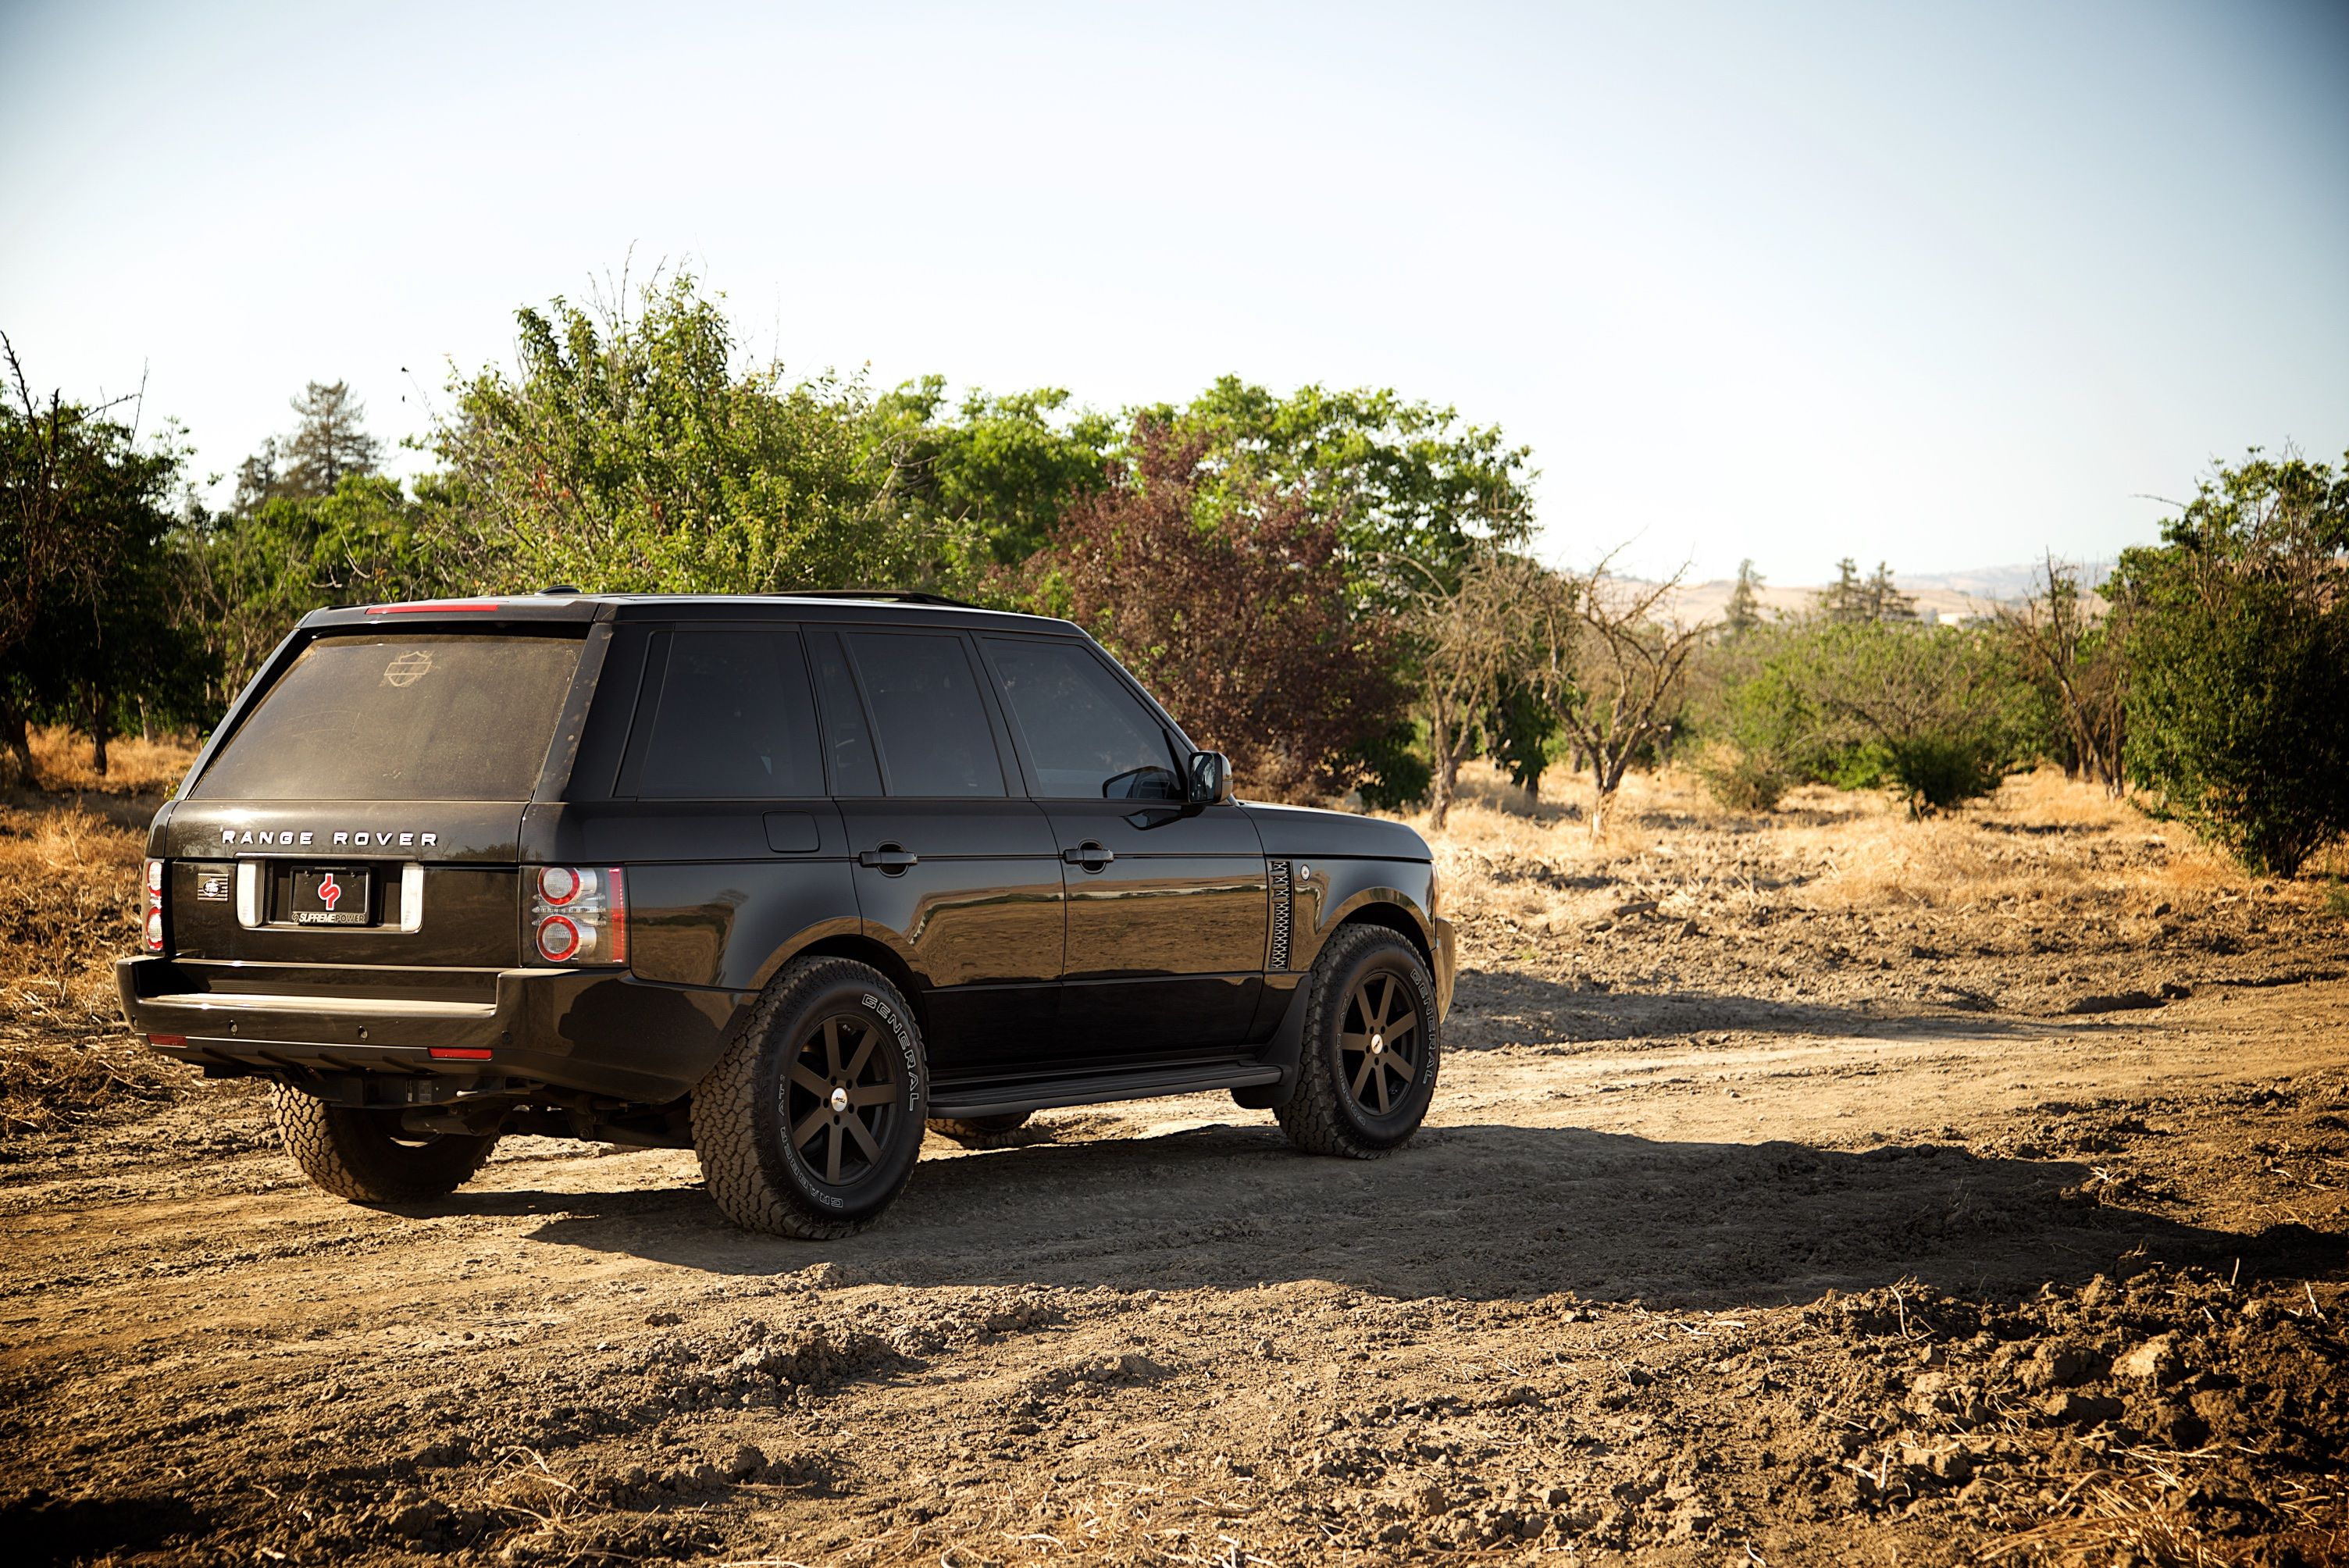 2010 l322 facelift full size range rover 2 lift on 33 tires 4x4 pinterest range rovers. Black Bedroom Furniture Sets. Home Design Ideas